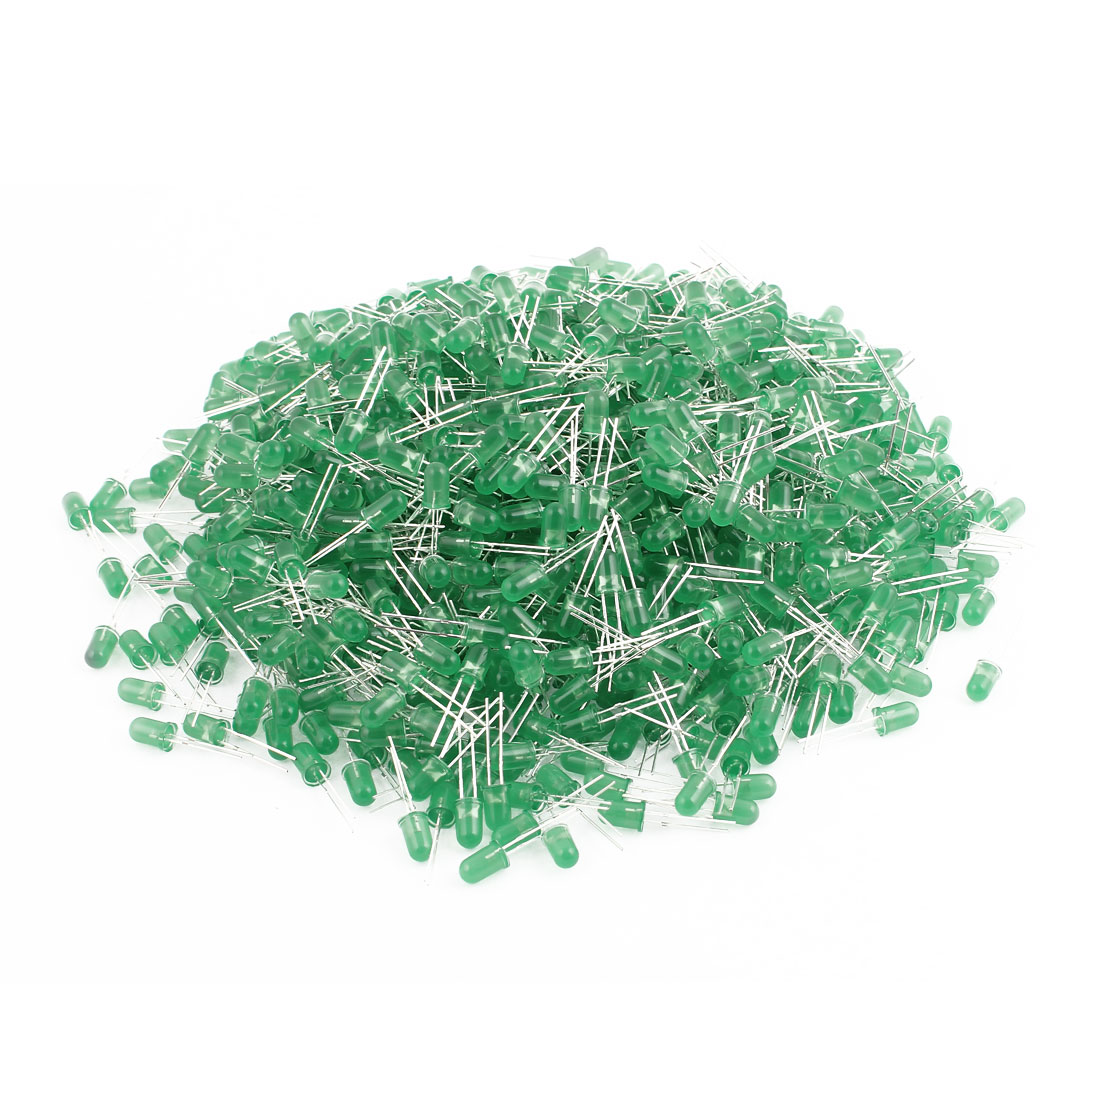 1000pcs 2 Terminal Green Light Emitting Diode 5mm Round Green Bulb for LED Light